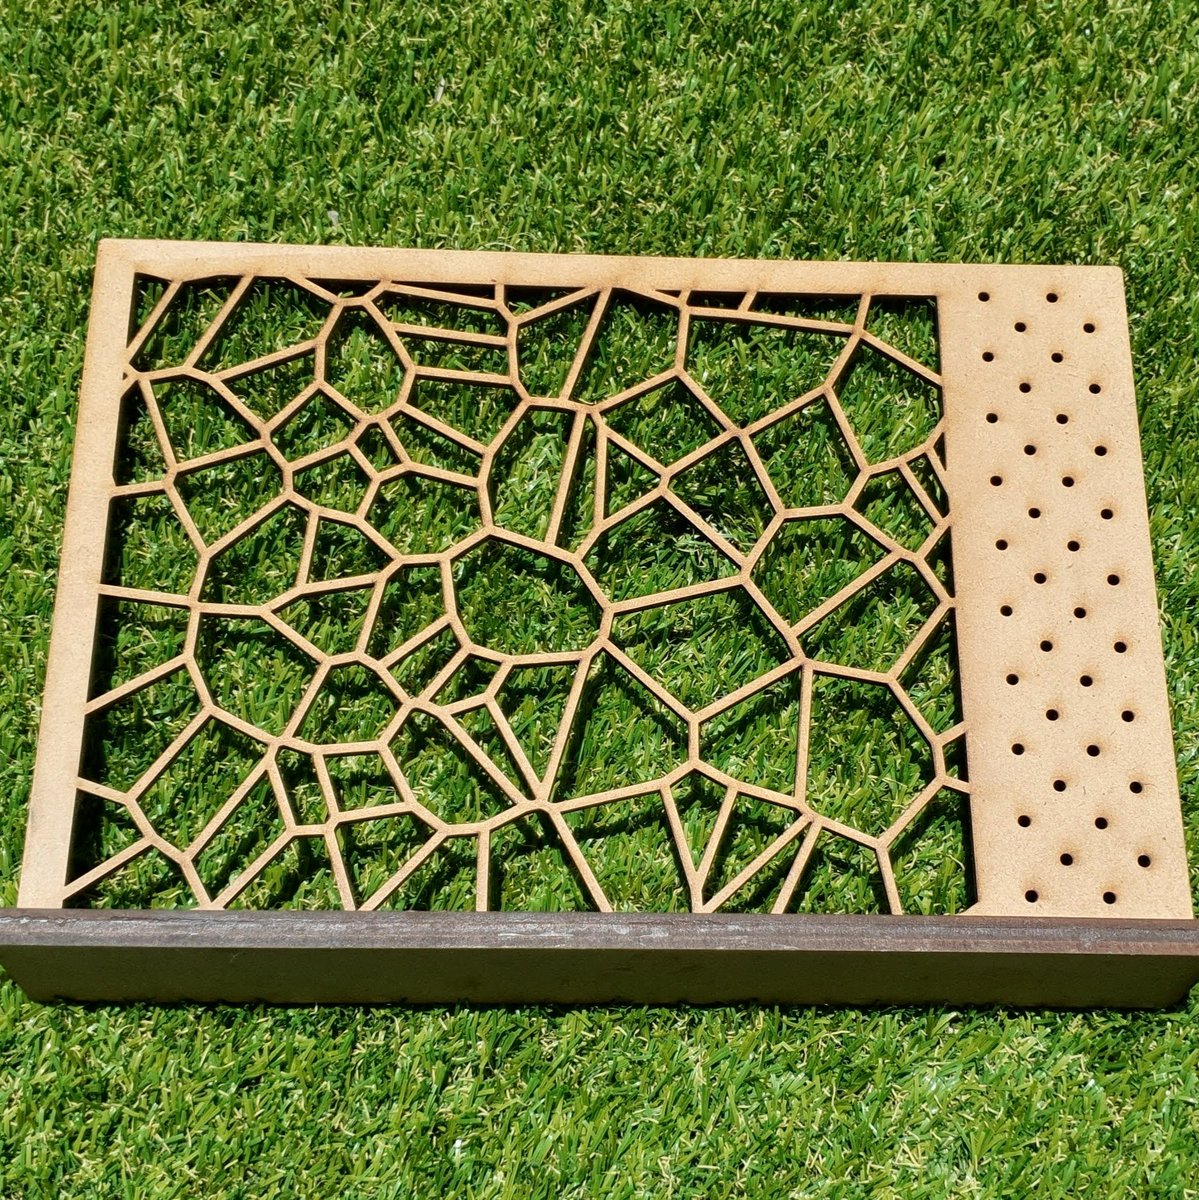 #Organic #Voronoi patterned #earring #rack in hand waxed pine. Measuring in at 29cm x 20cm this rack has enough space for plenty of #quirkish earrings, without taking up too much room.  #laserCut #Queensland #artisan #designer